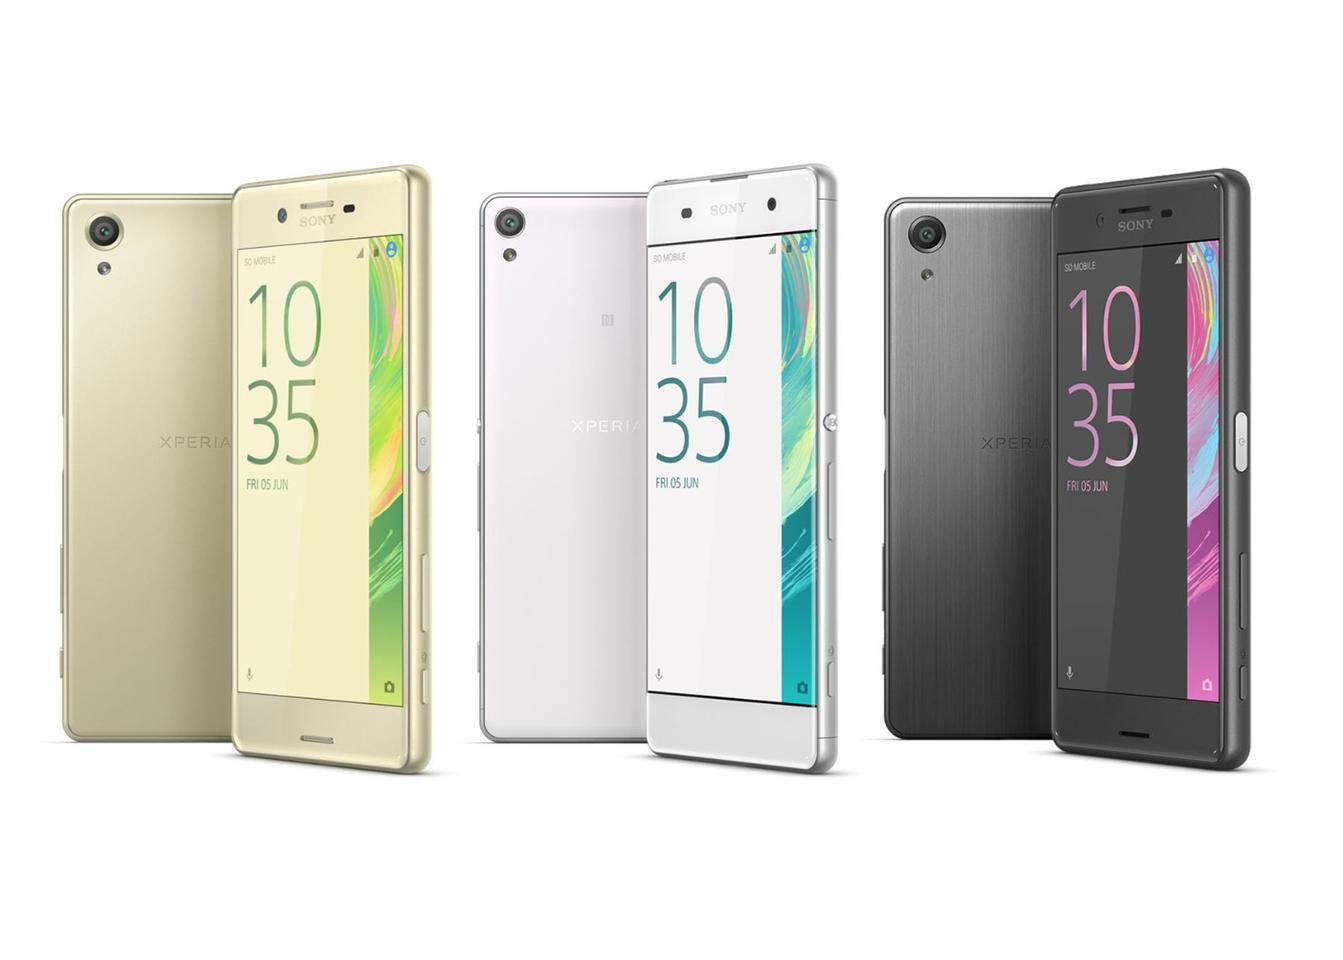 As yet no prices have been announced by Sony for the new Xperia X line